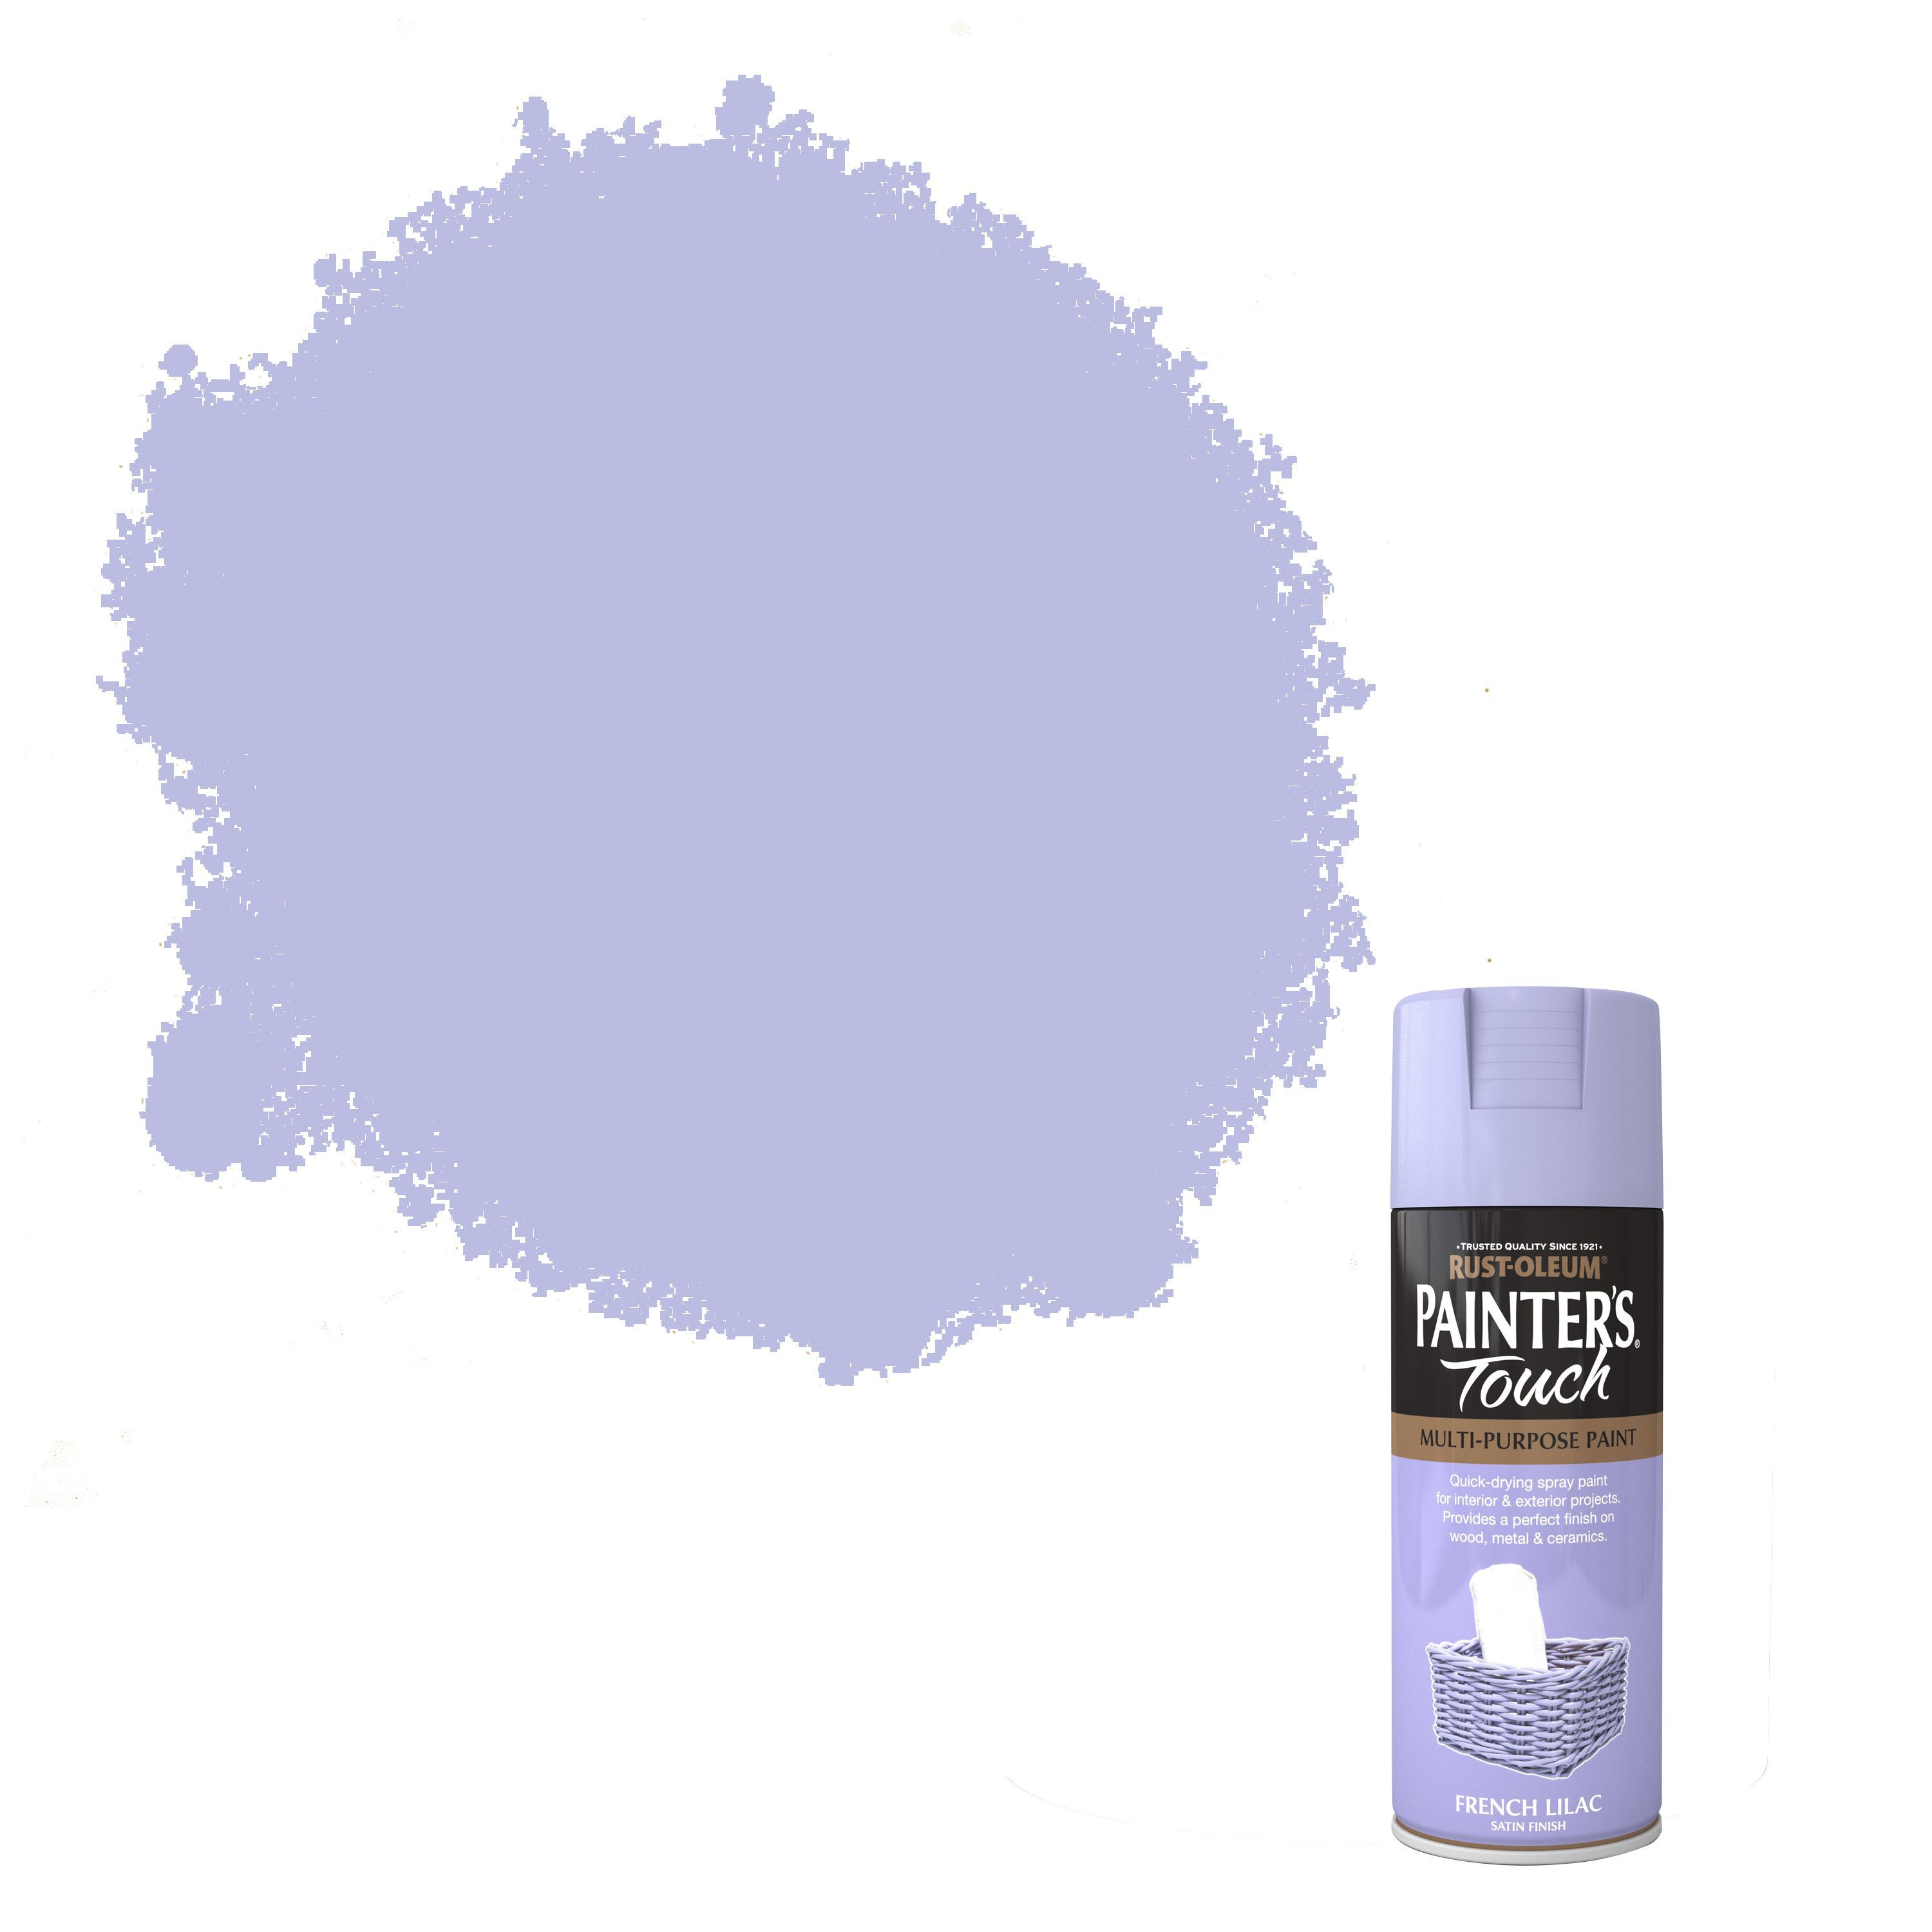 Rust-oleum Painter's Touch French Lilac Satin Effect Satin Decorative Spray Paint 400 Ml